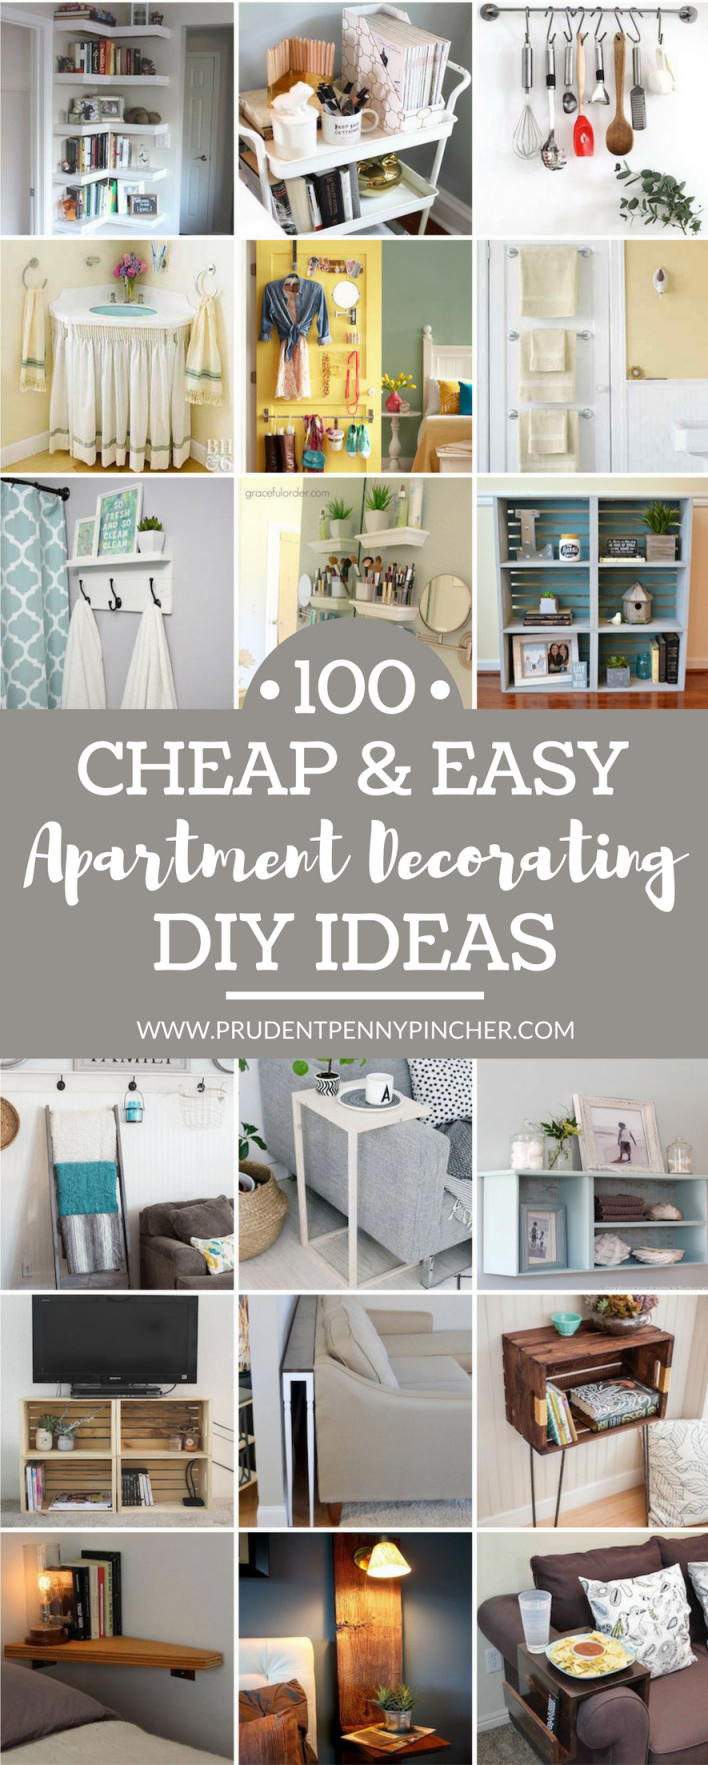 100 Cheap And Easy Diy Apartment Decorating Ideas | Diy inside Fresh Bedroom Cheap Decorating Ideas